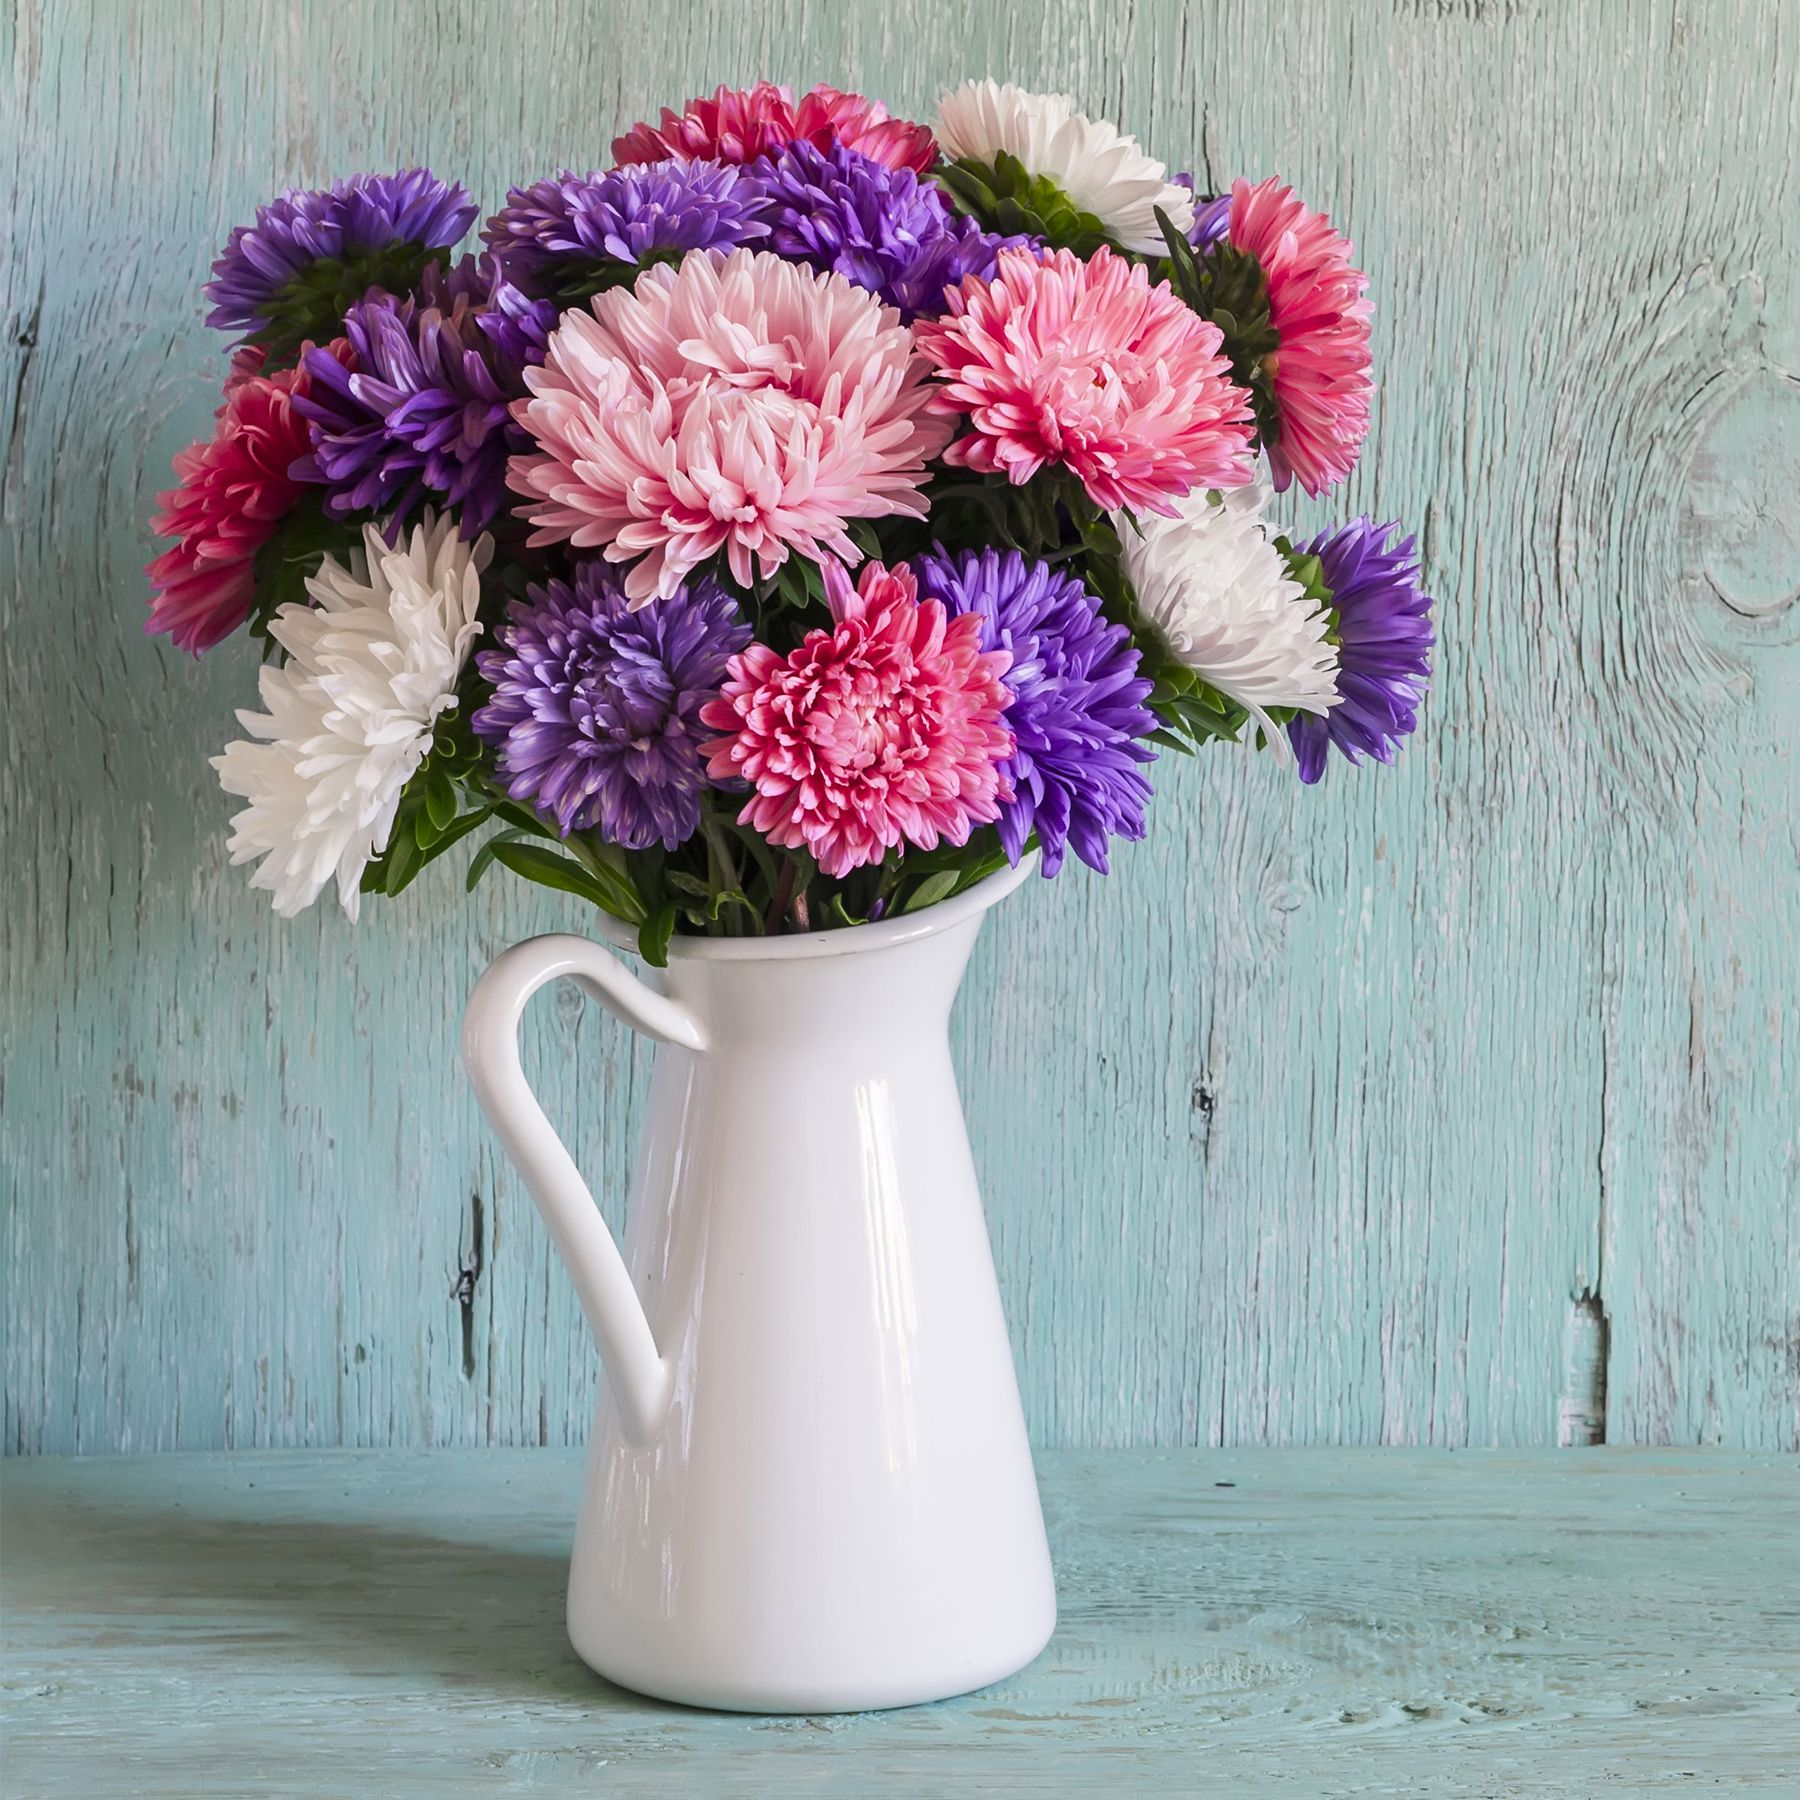 The Aster Flower Carries A Variety Of Meanings But In General The Flower Mainly Represents Love Wisdom In 2020 Aster Flower Flower Delivery Flower Delivery Service